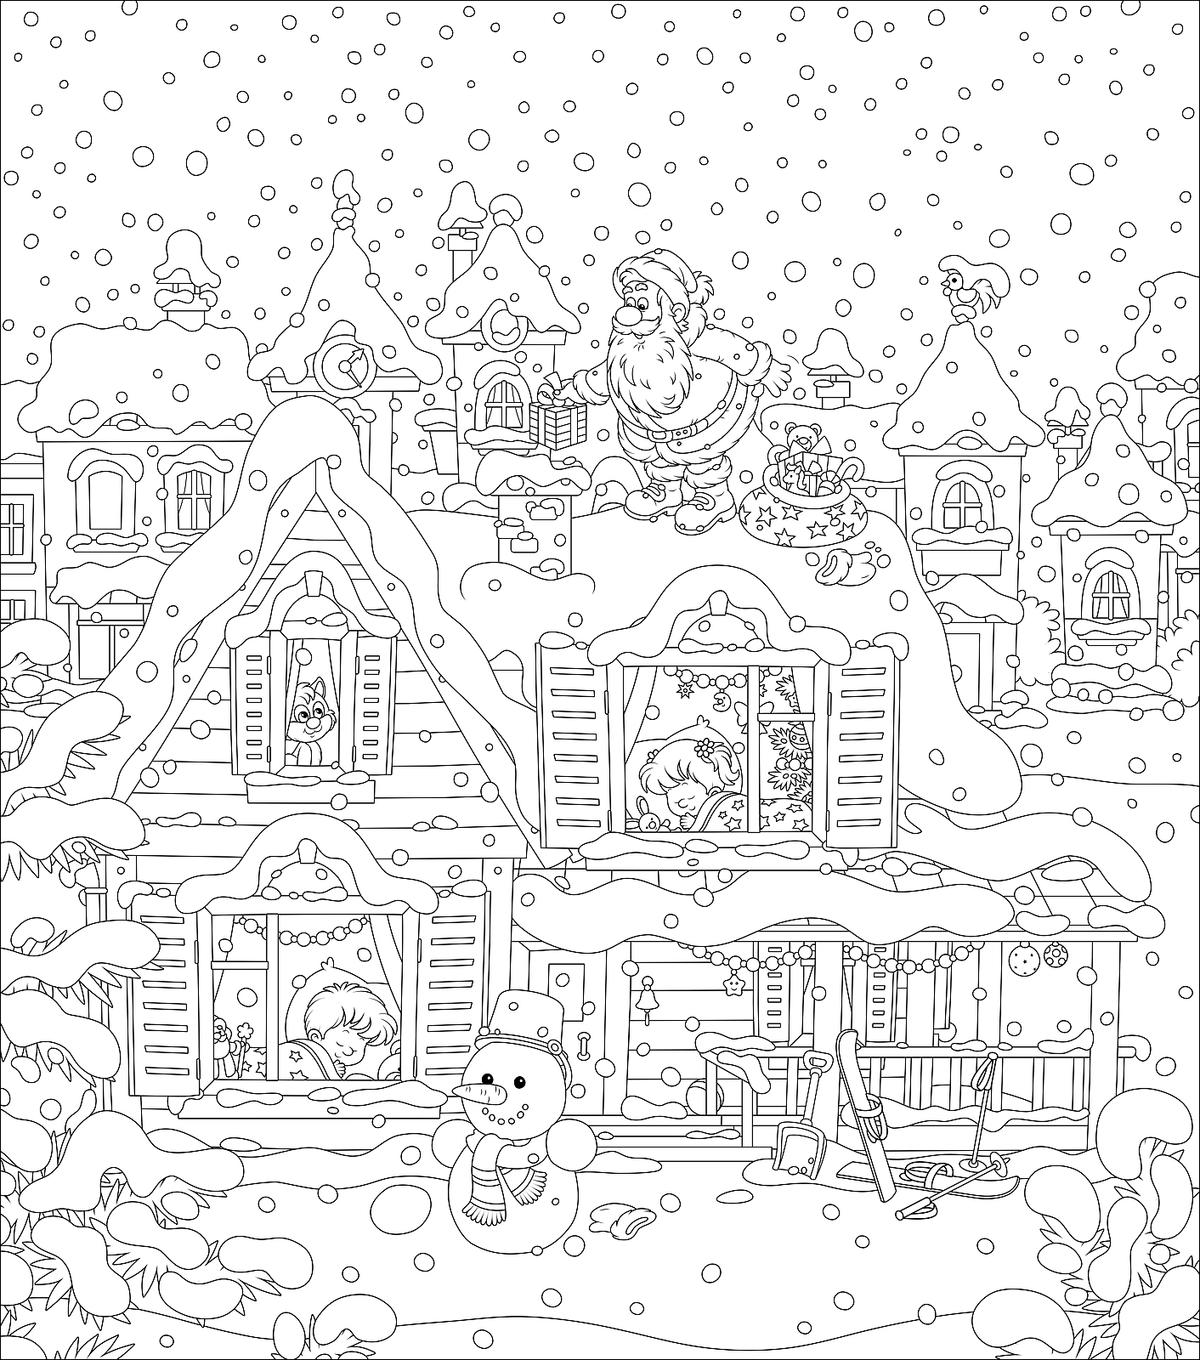 Free Coloring Pages That You Can Print - Coloring Home | 1360x1200